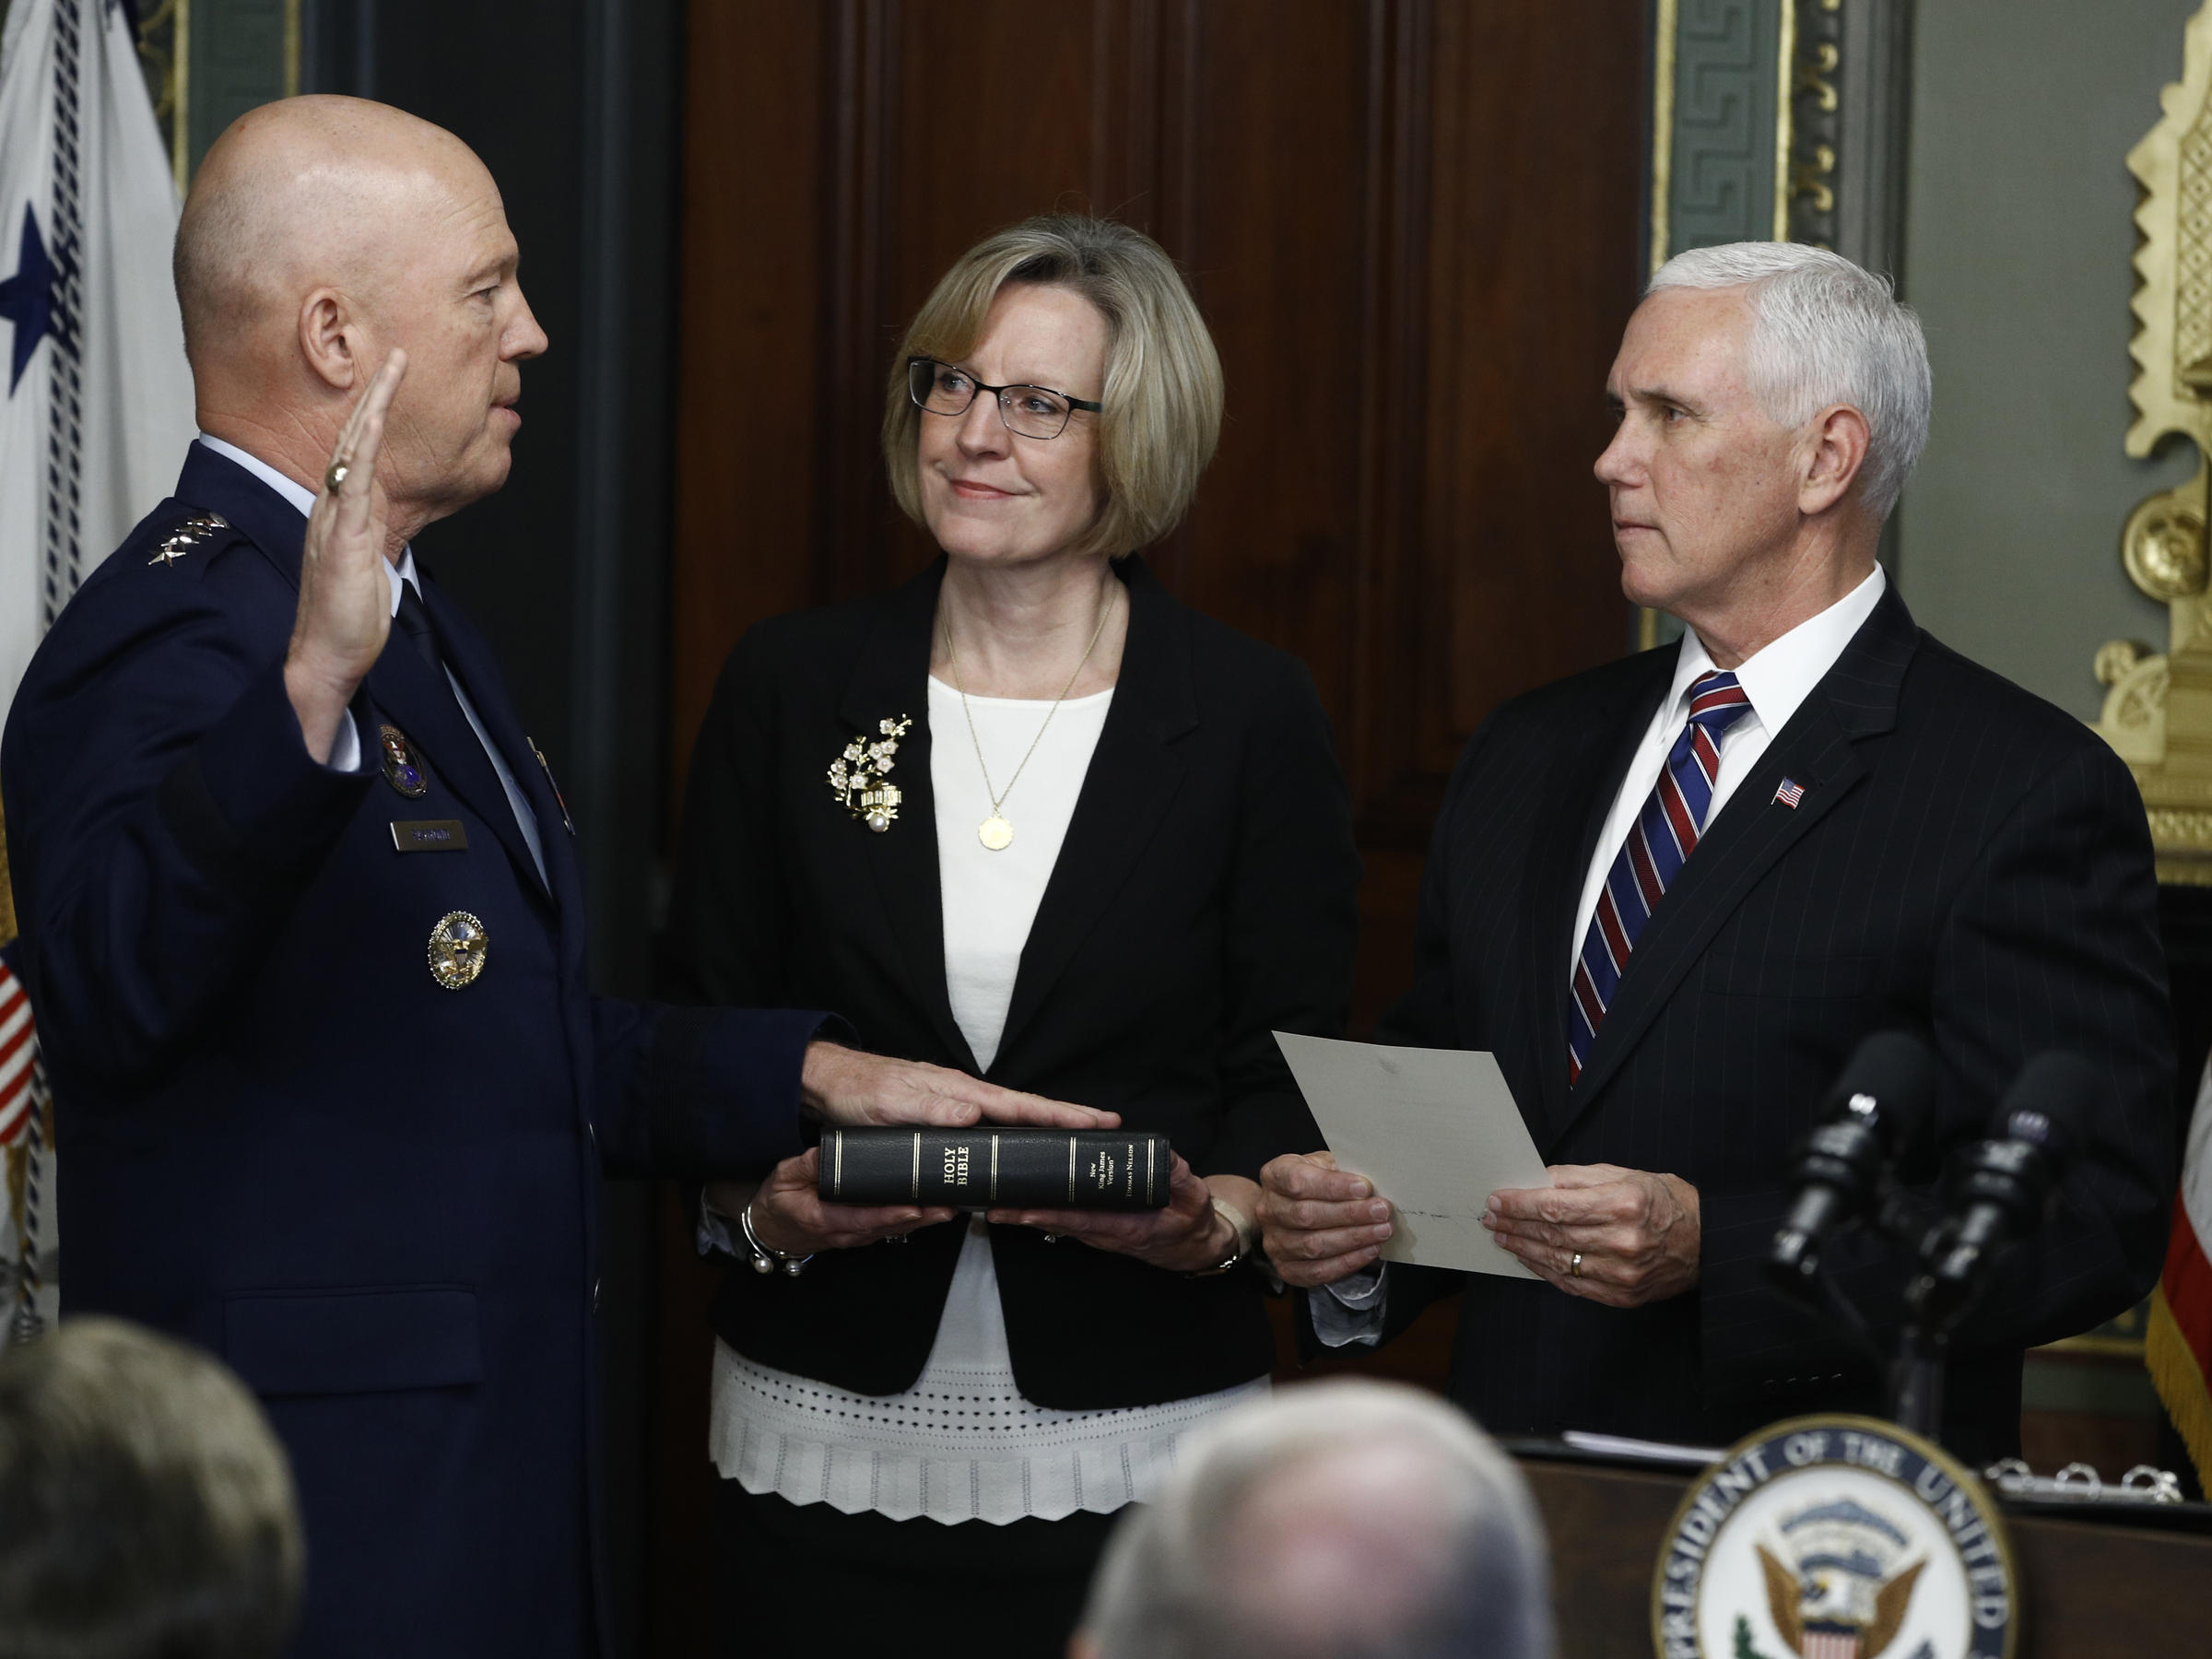 Commander Sworn In As First Member Of New Space Force